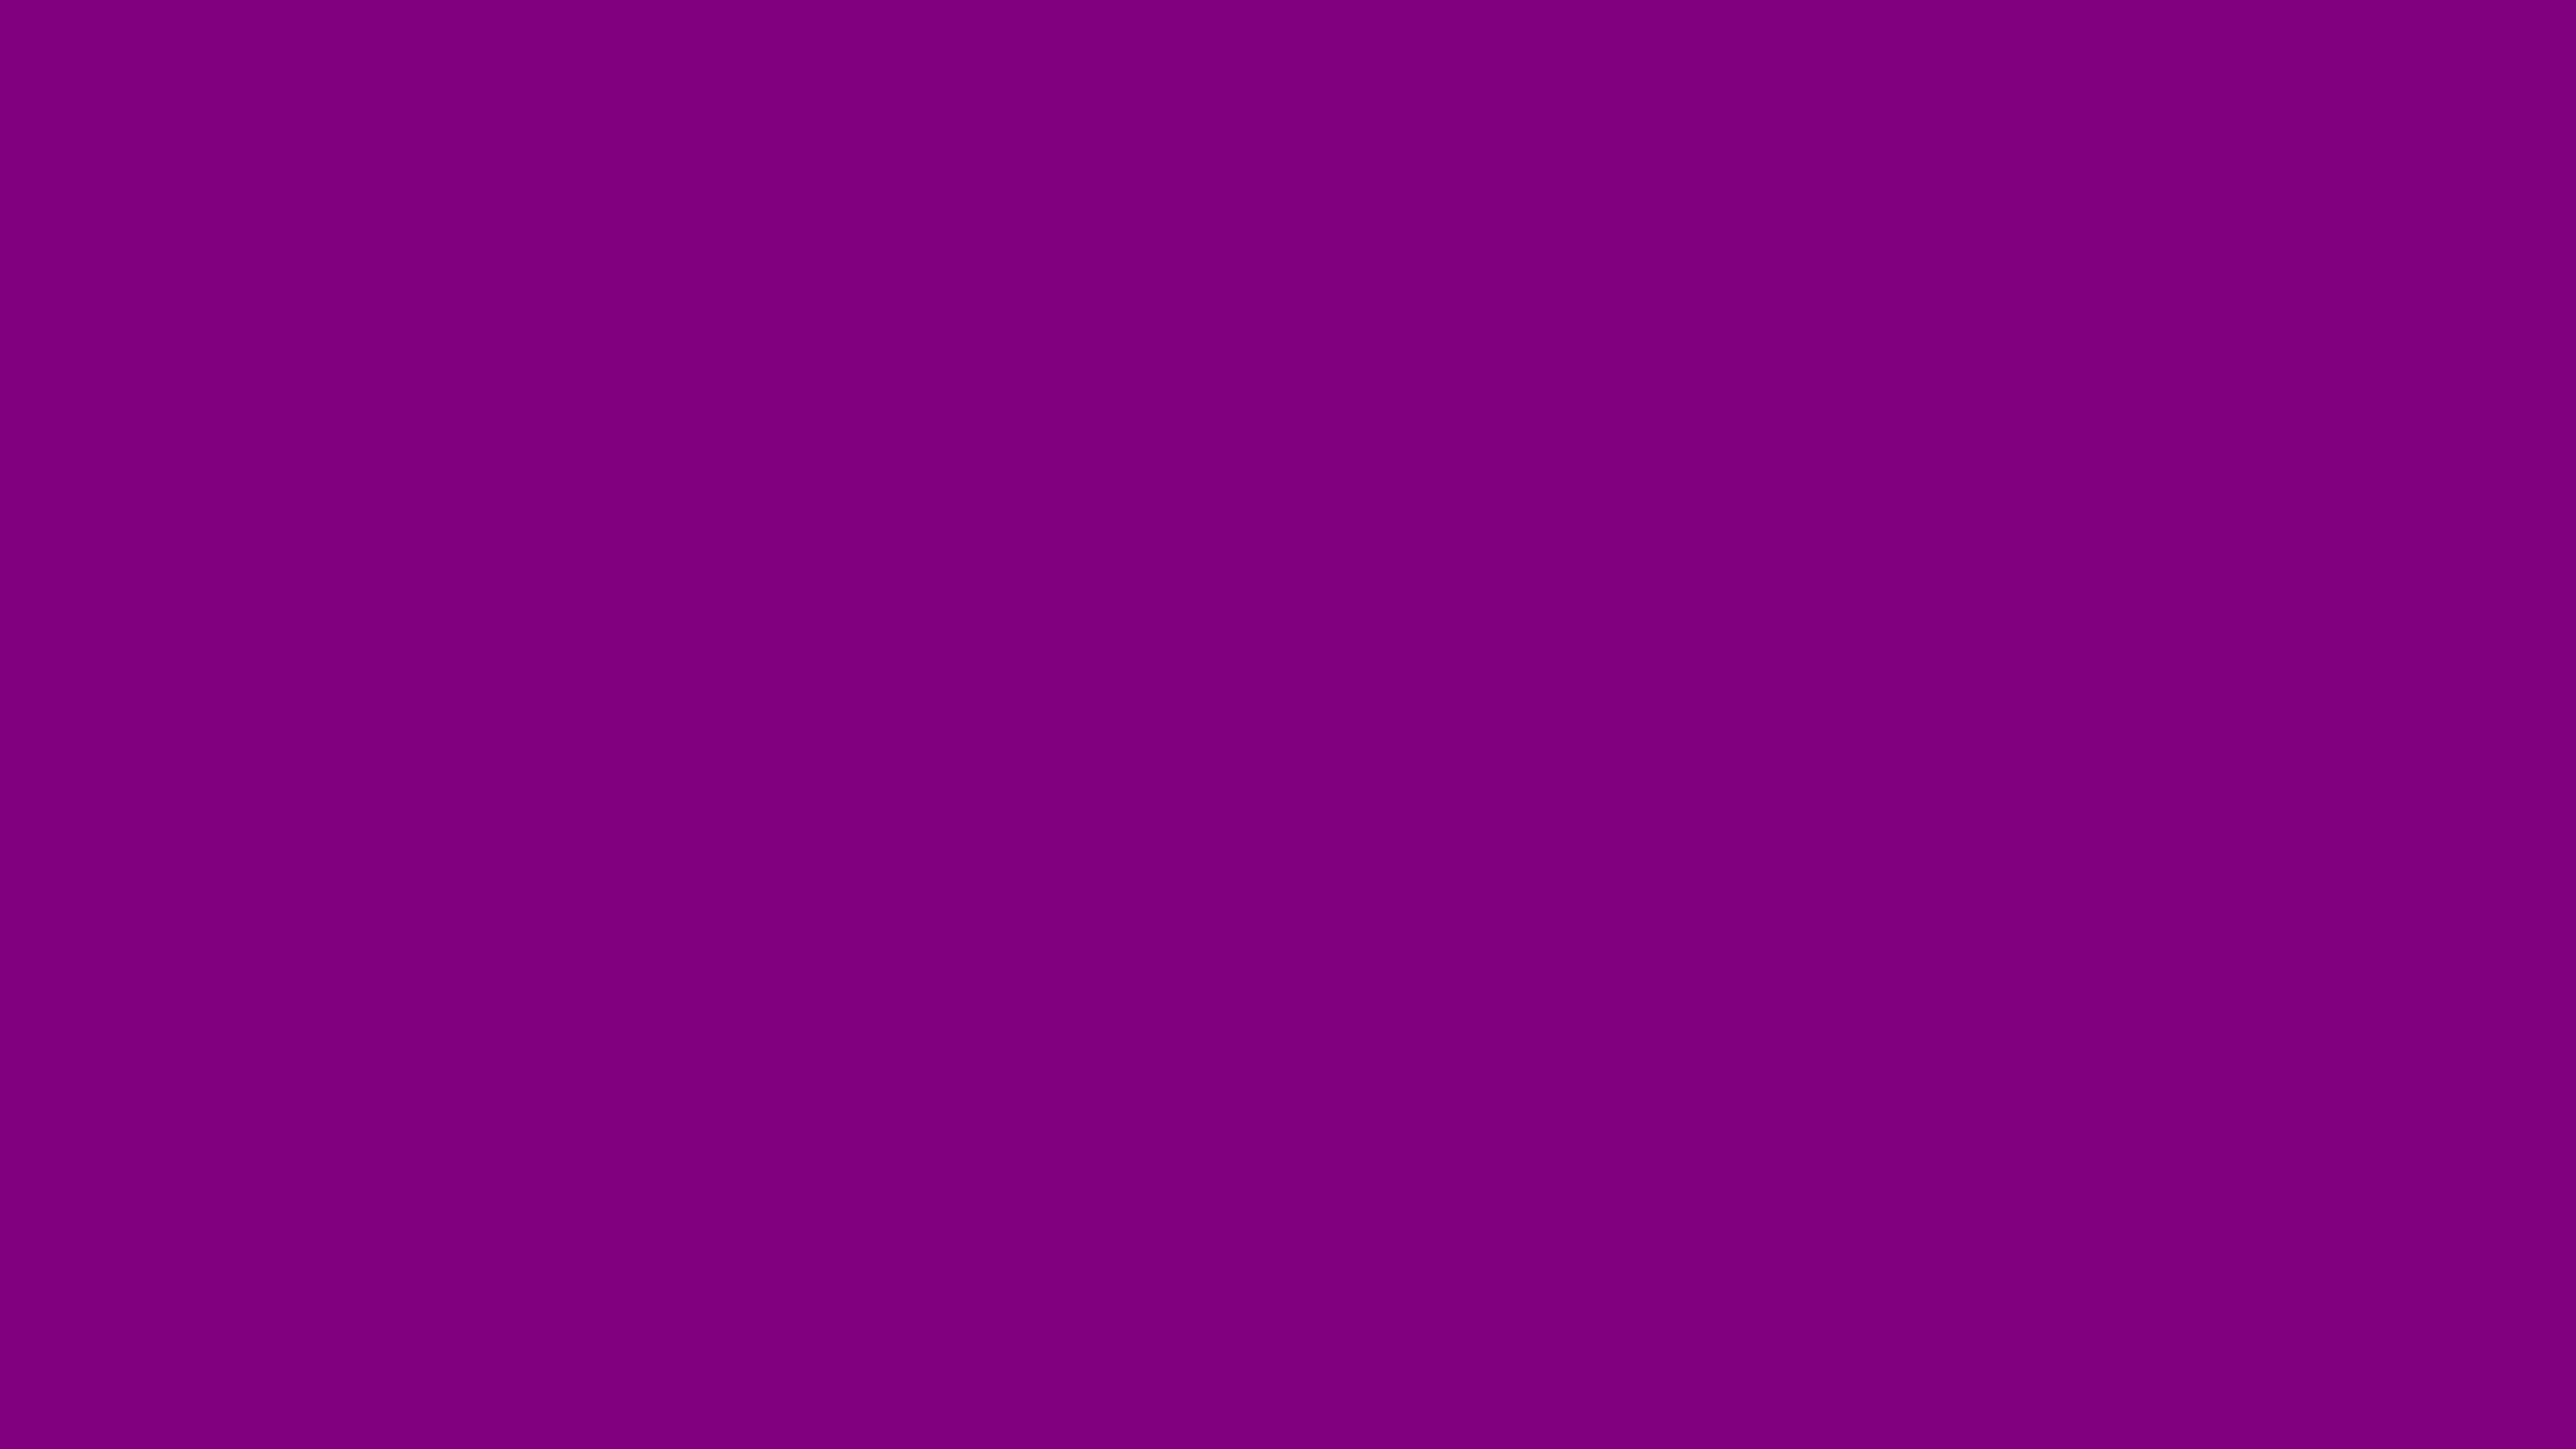 7680x4320 Purple Web Solid Color Background